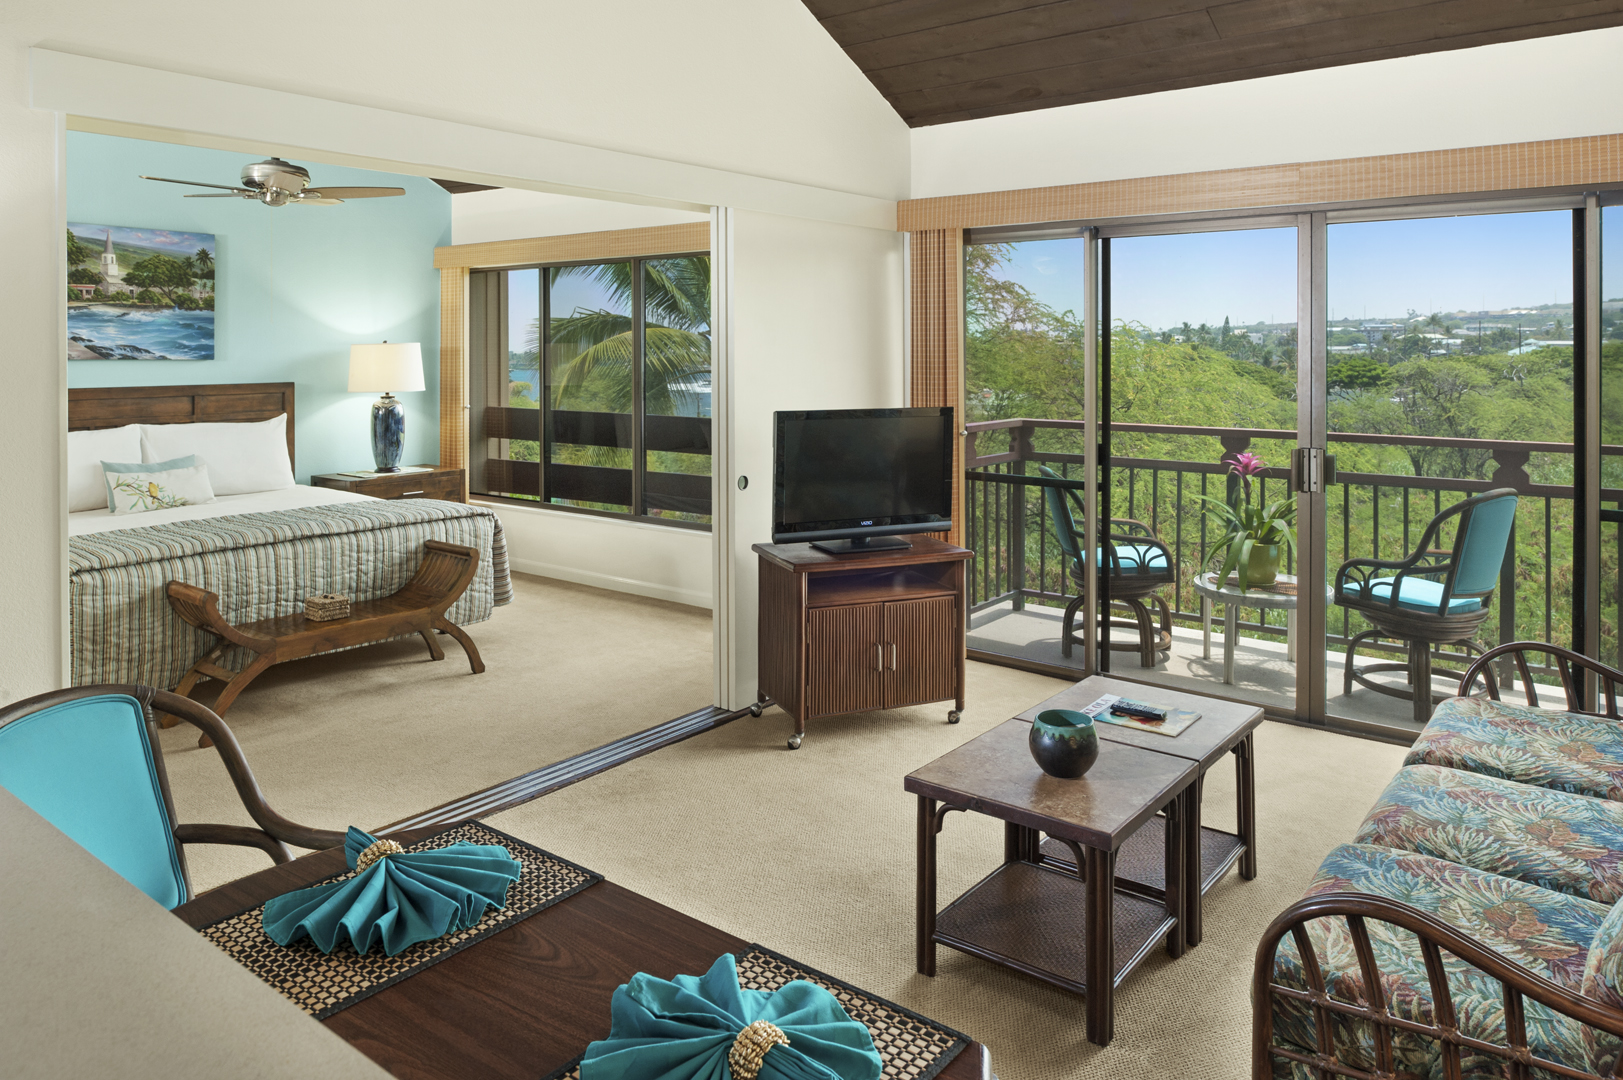 Hawaii-Kona 1 bed/1 bath timeshare for June 3-13 at the Kona Billfisher